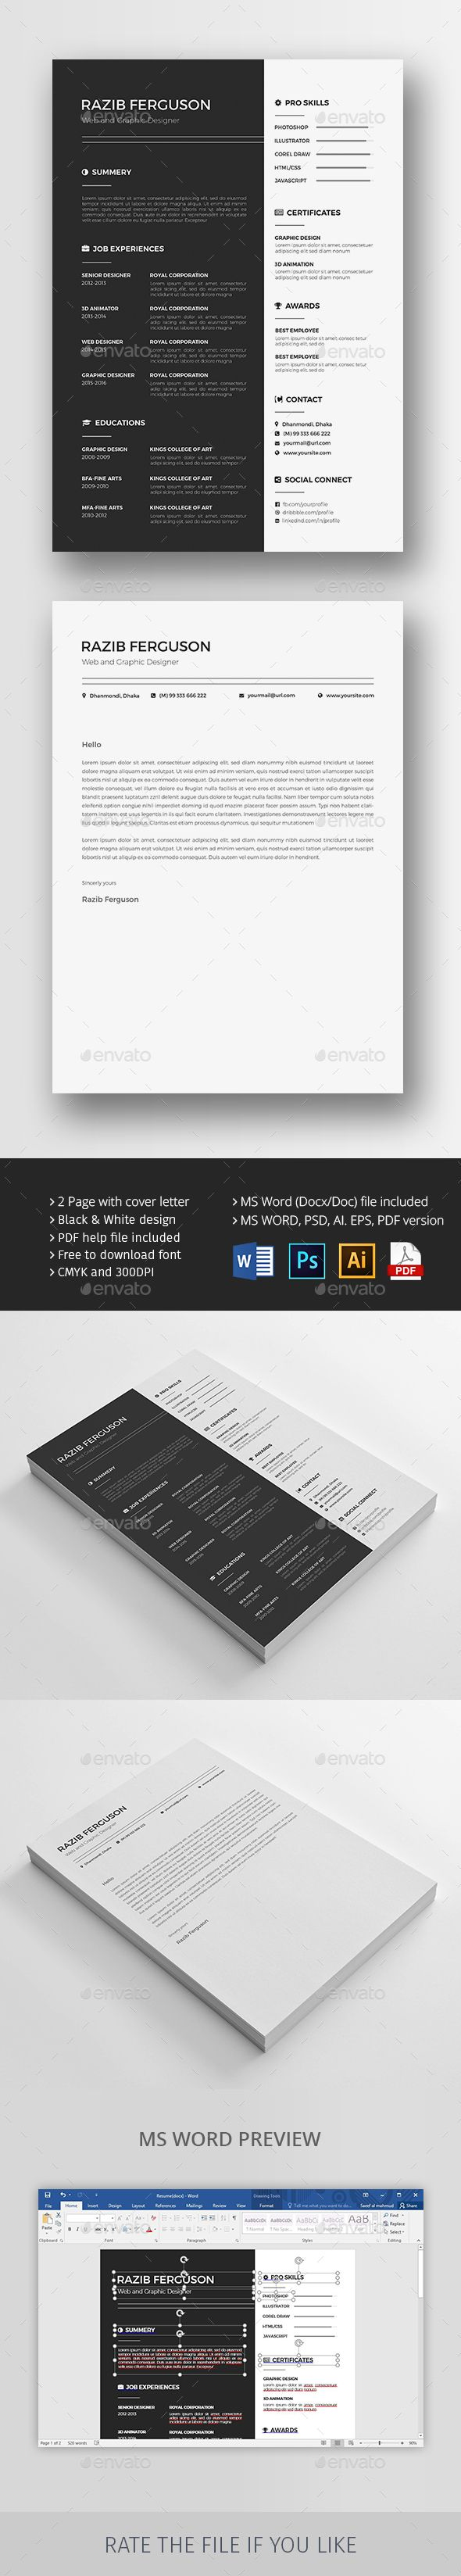 Illustrator Resume Templates Resume  Job Cv Psd Templates And Ai Illustrator